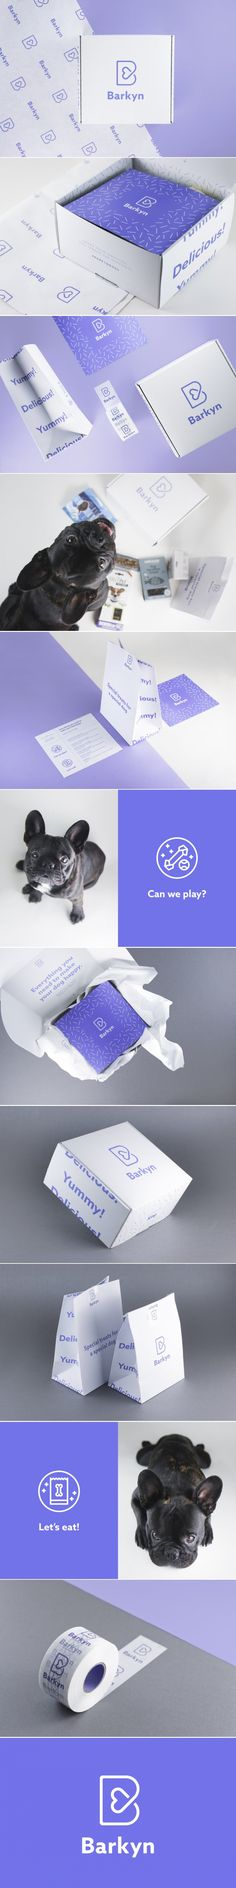 Barkyn Is the Adorable Pet Subscription Service You Didn't Know You Needed — The Dieline | Packaging & Branding Design & Innovation News